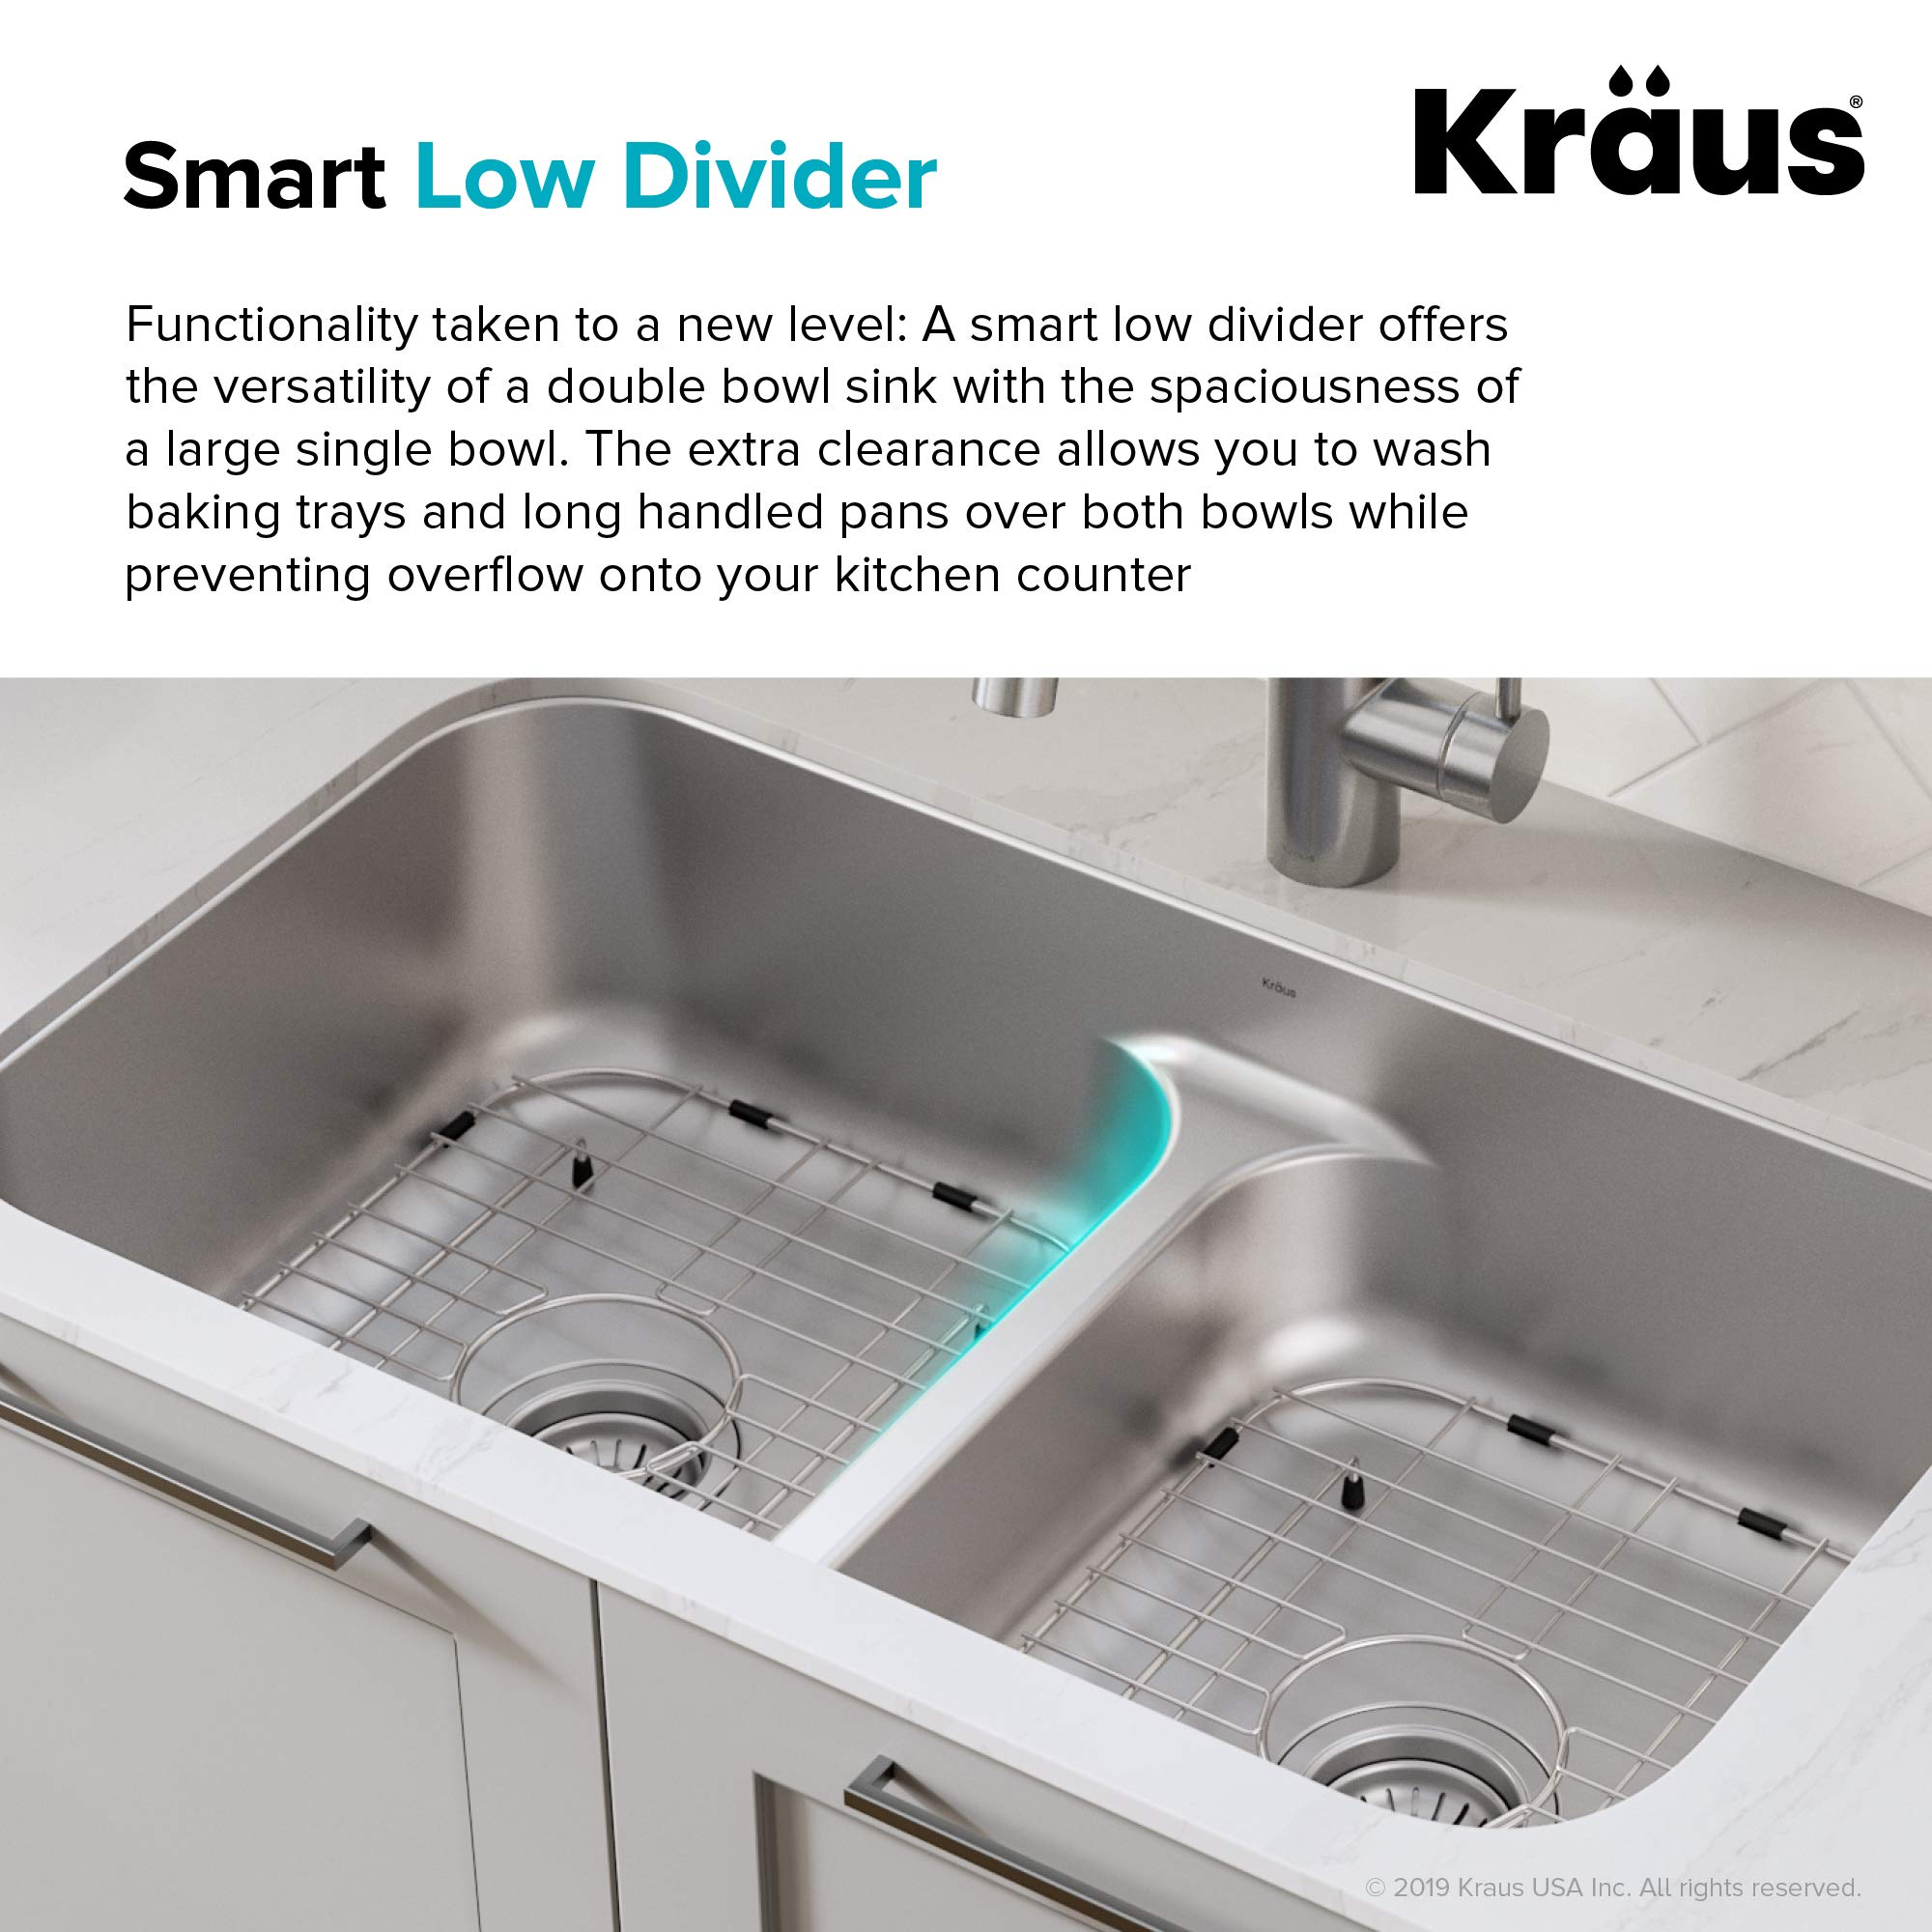 KRAUS KBU32 Premier 32-inch 16 Gauge Undermount 50/50 Double Bowl Kitchen Sink with Smart Low Divider by Kraus (Image #4)